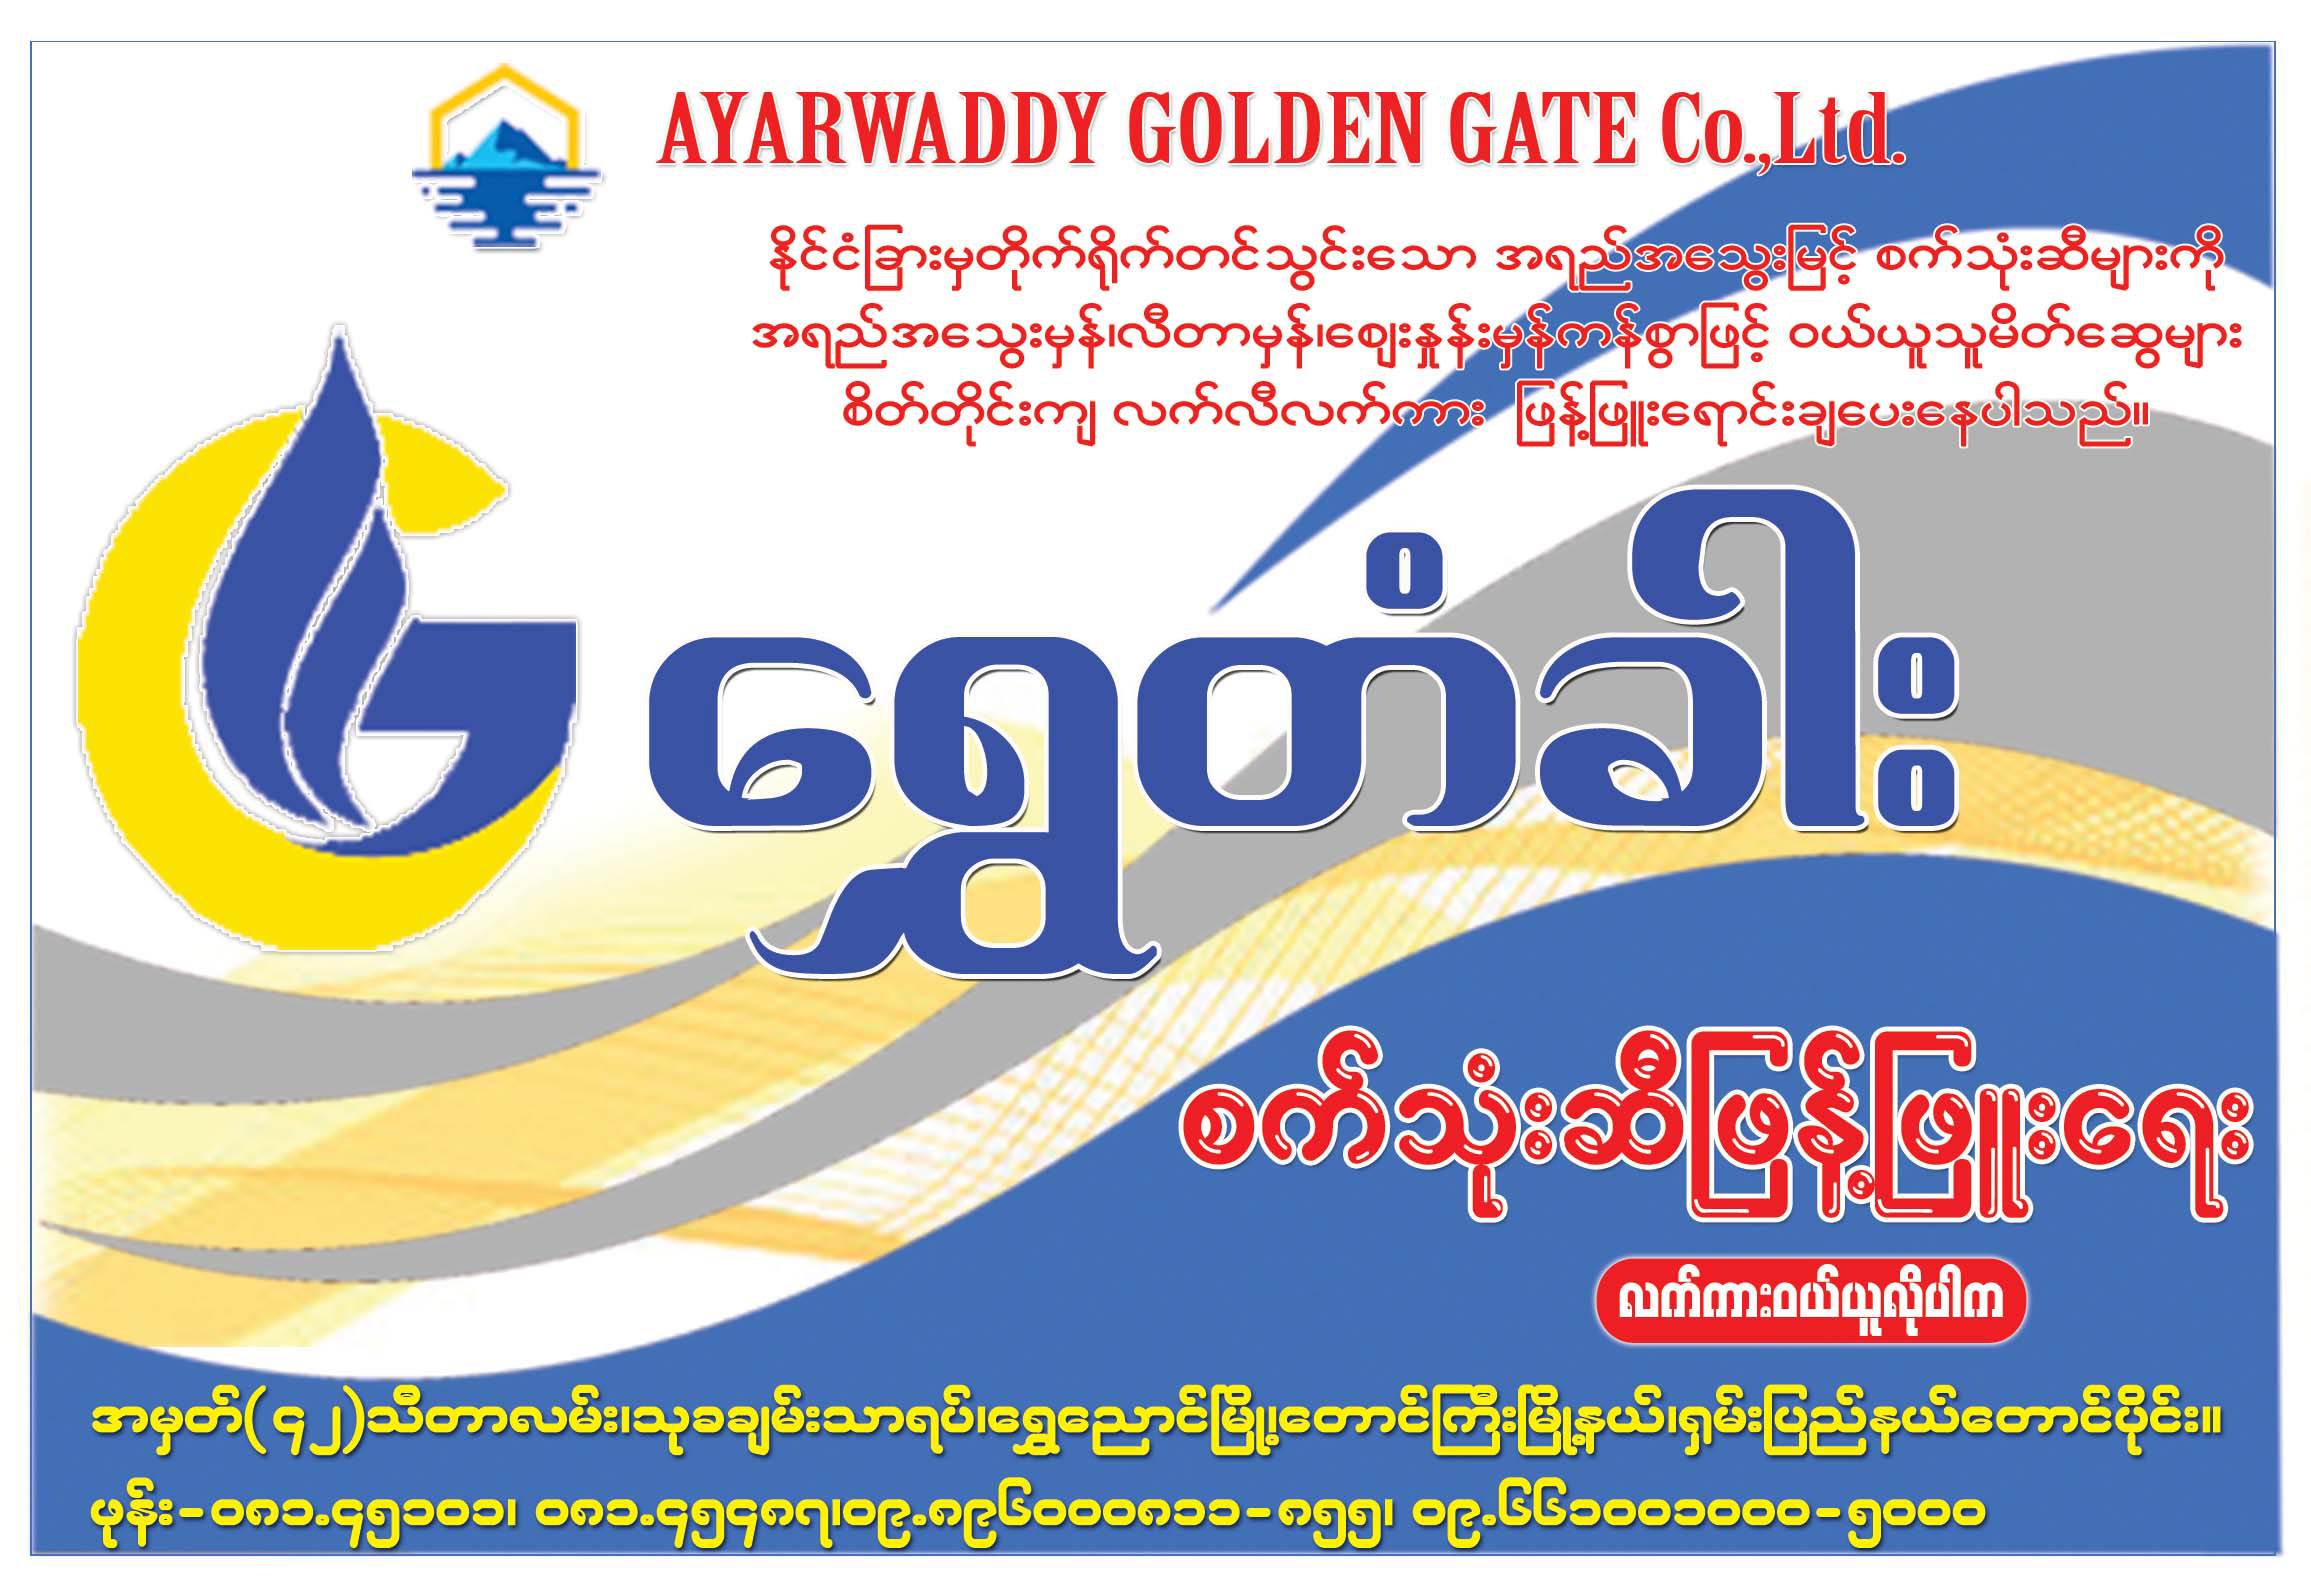 Ayarwaddy Golden Gate Co., Ltd. (Golden Door)